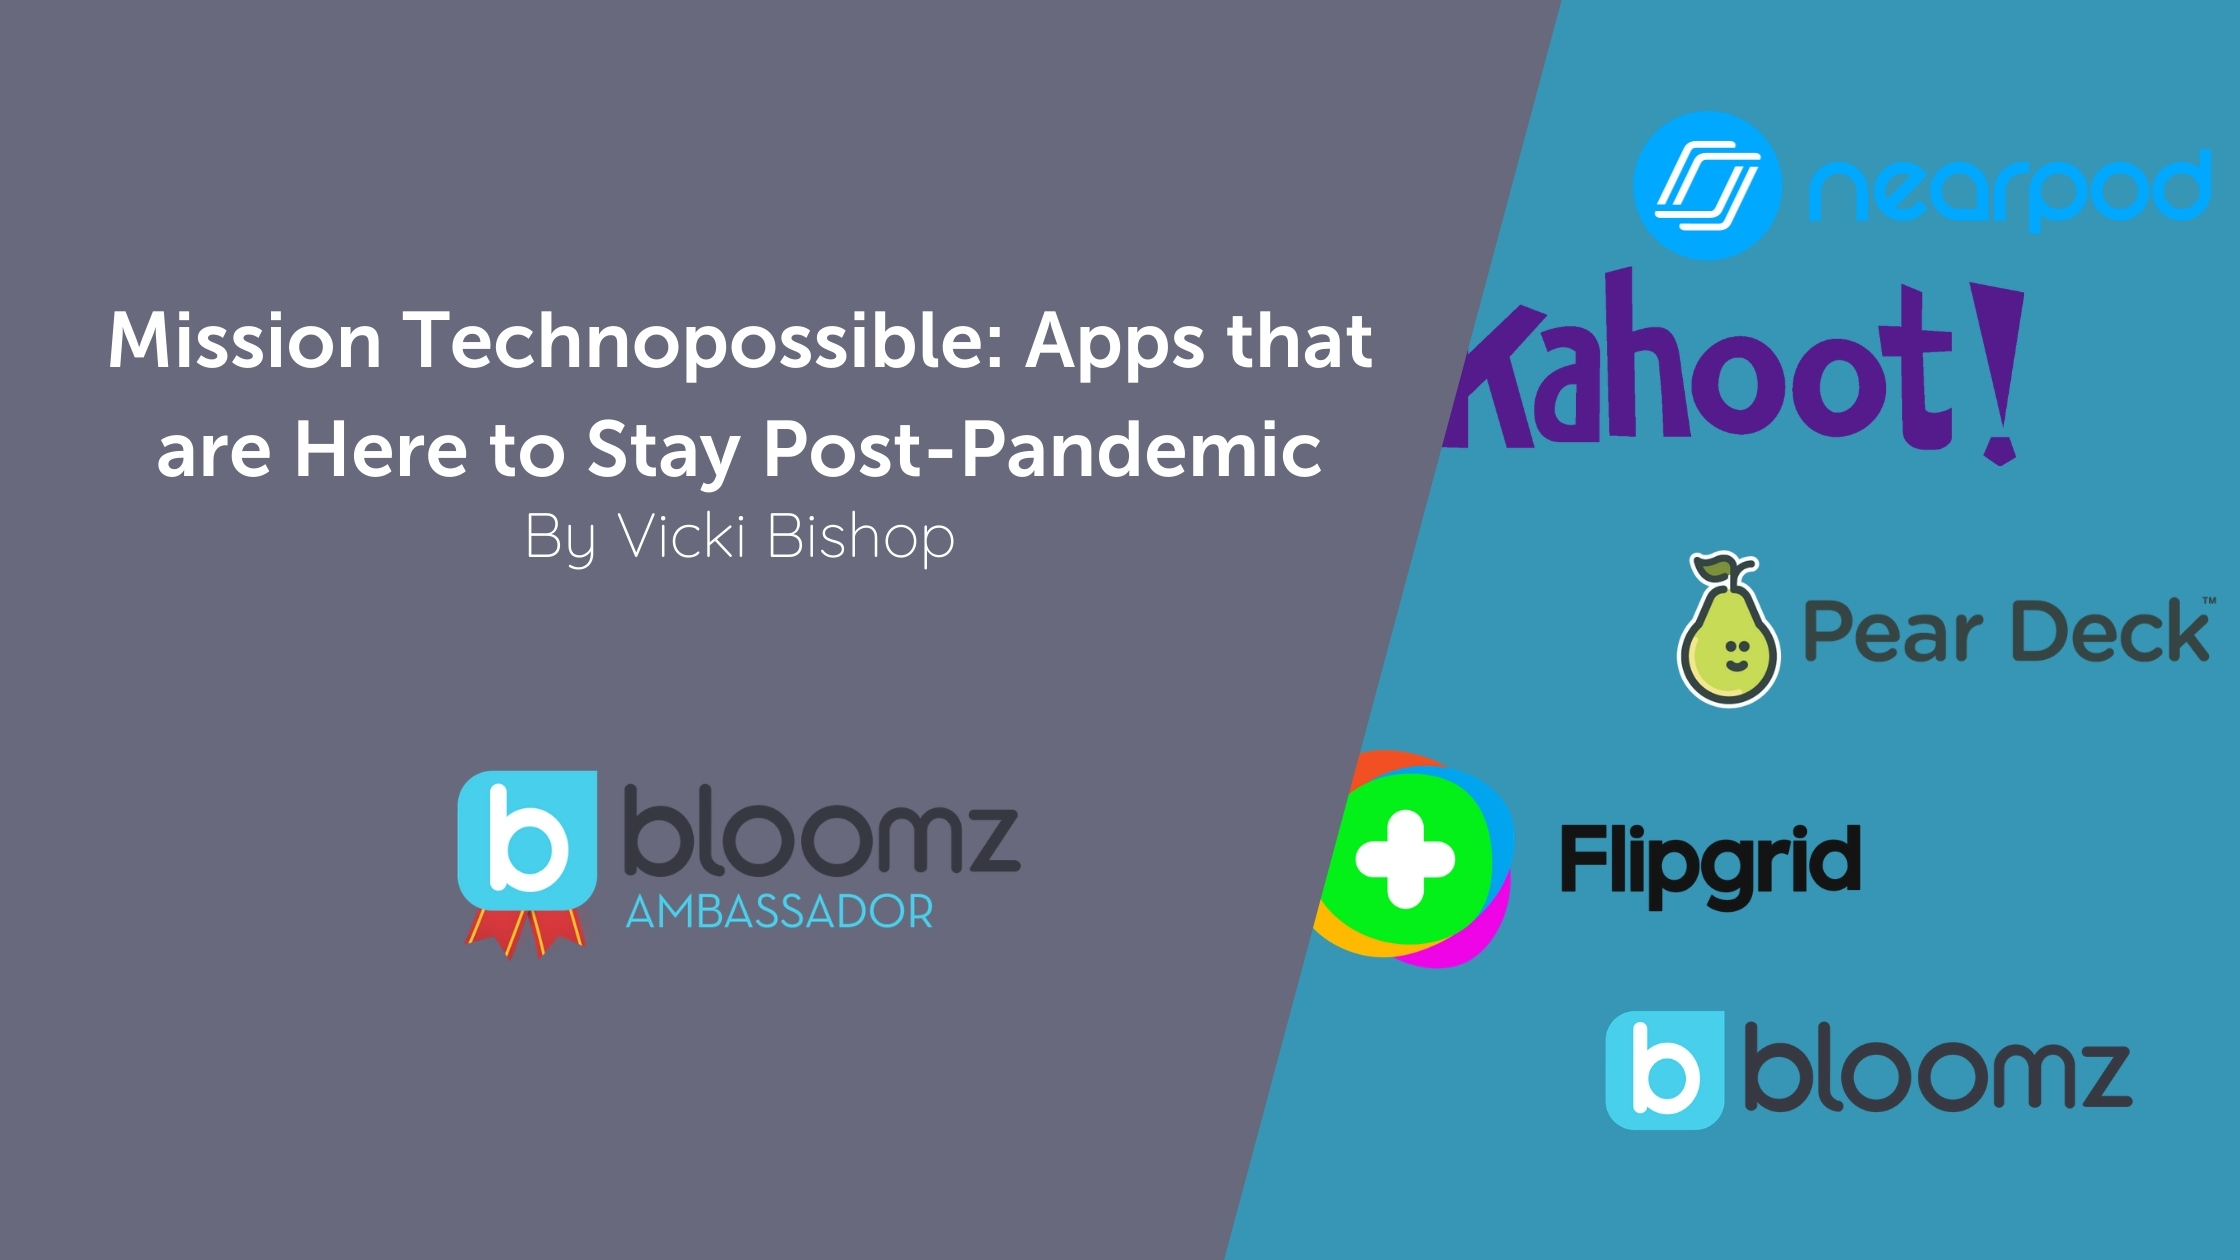 Mission Technopossible: Apps that are Here to Stay Post-Pandemic